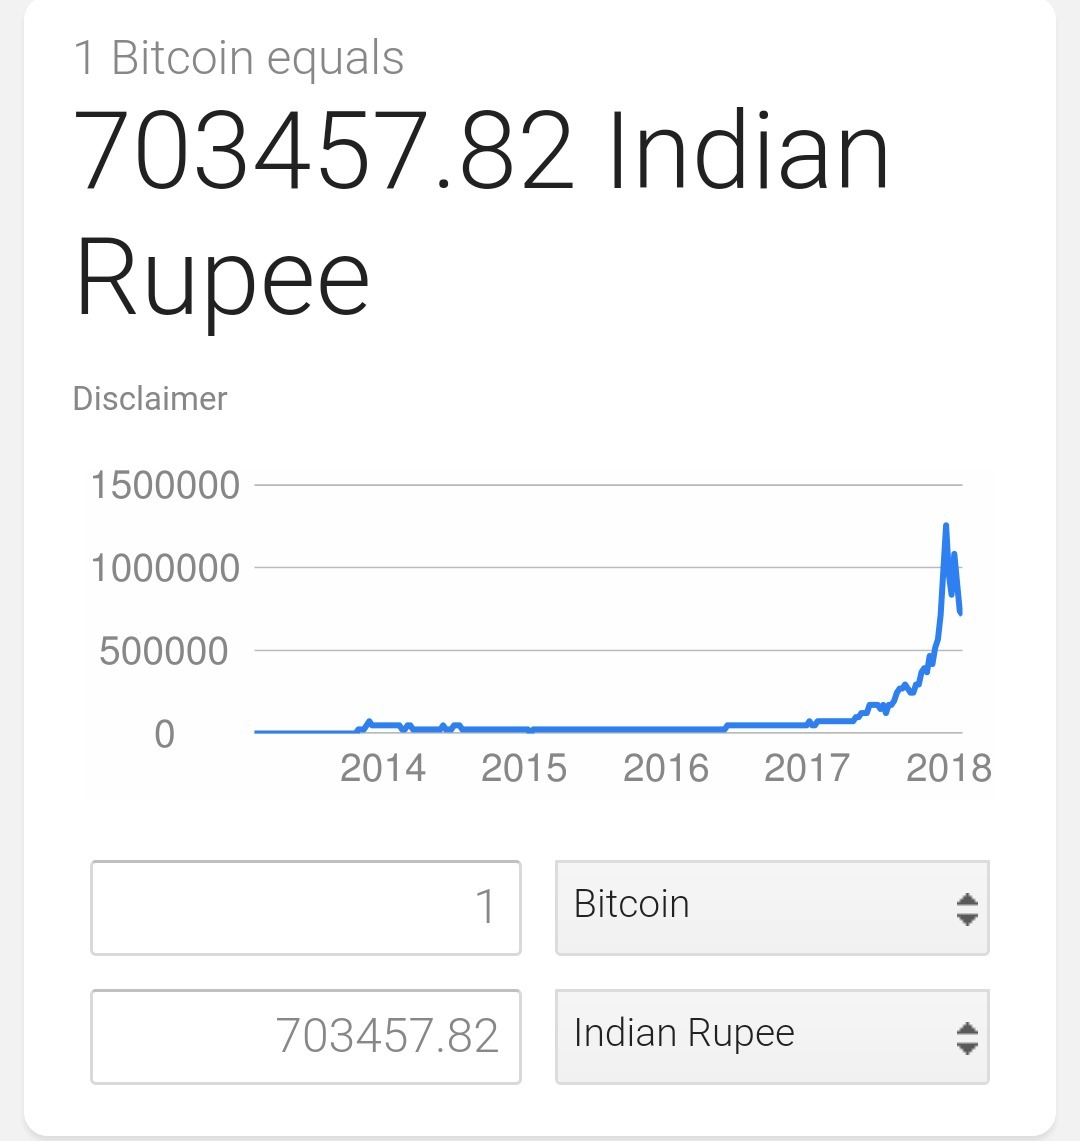 2 rupees to dollars